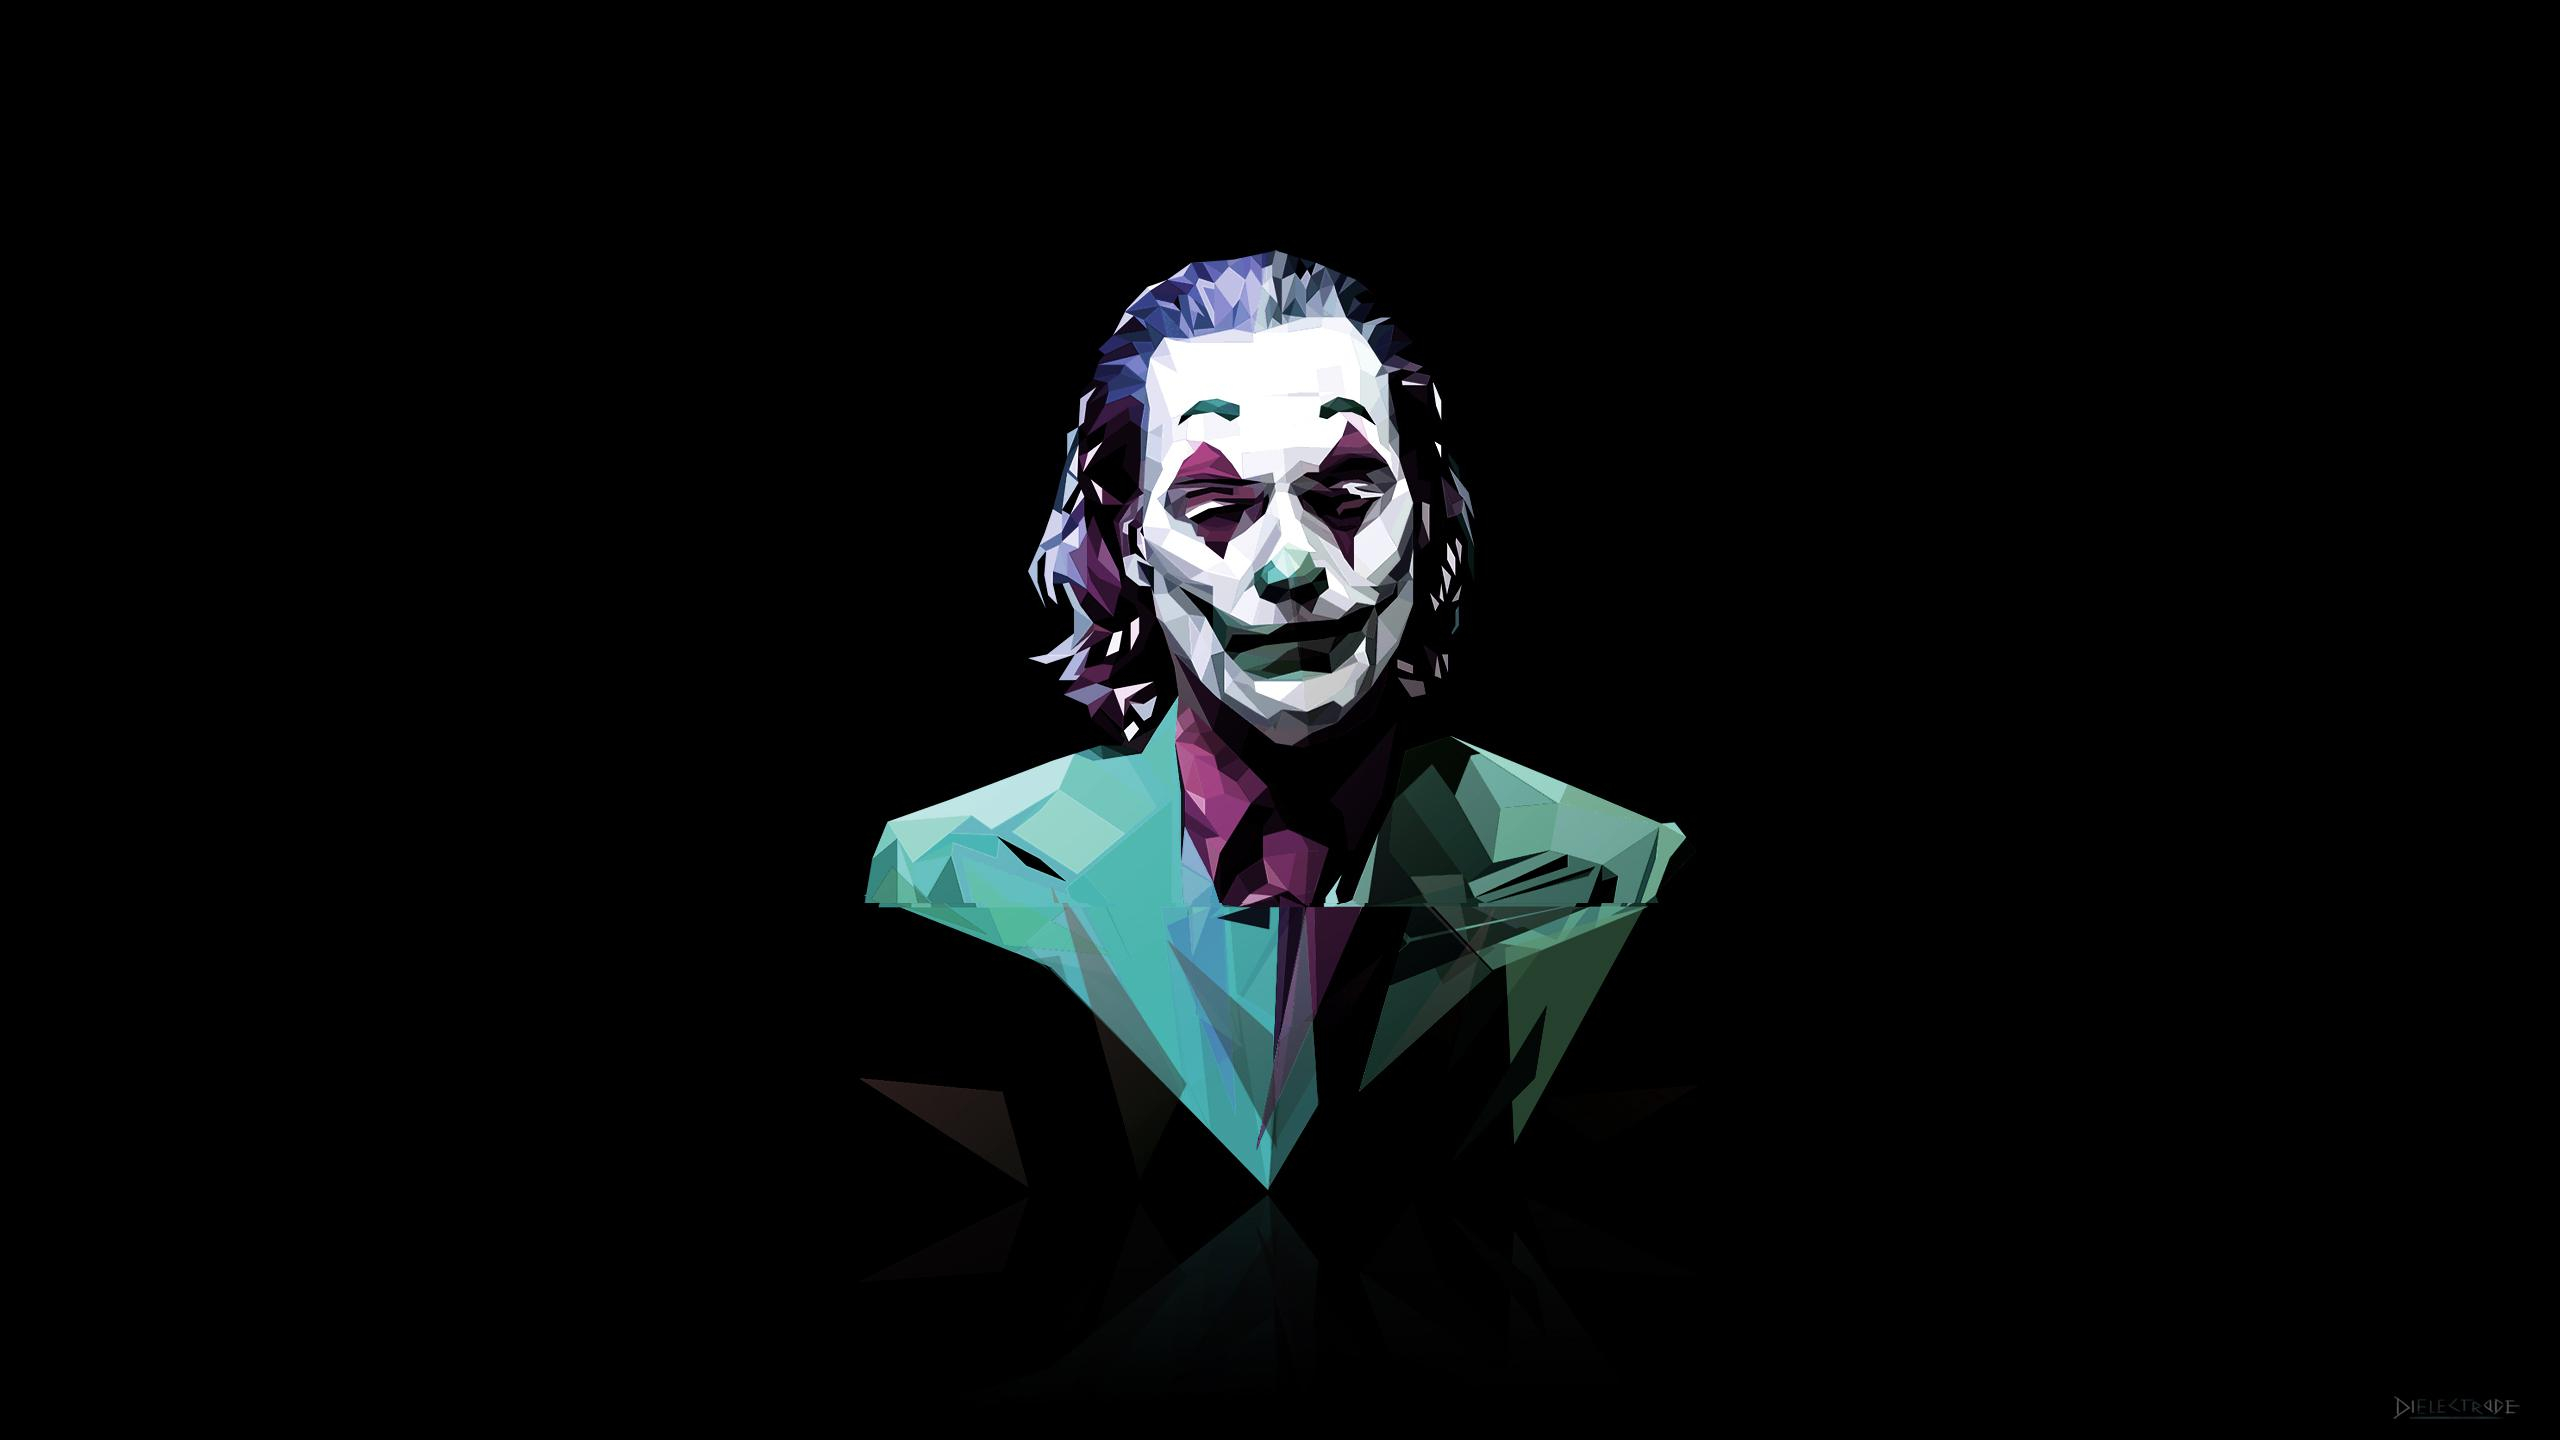 Joker 4k Wallpapers For Your Desktop Or Mobile Screen Free